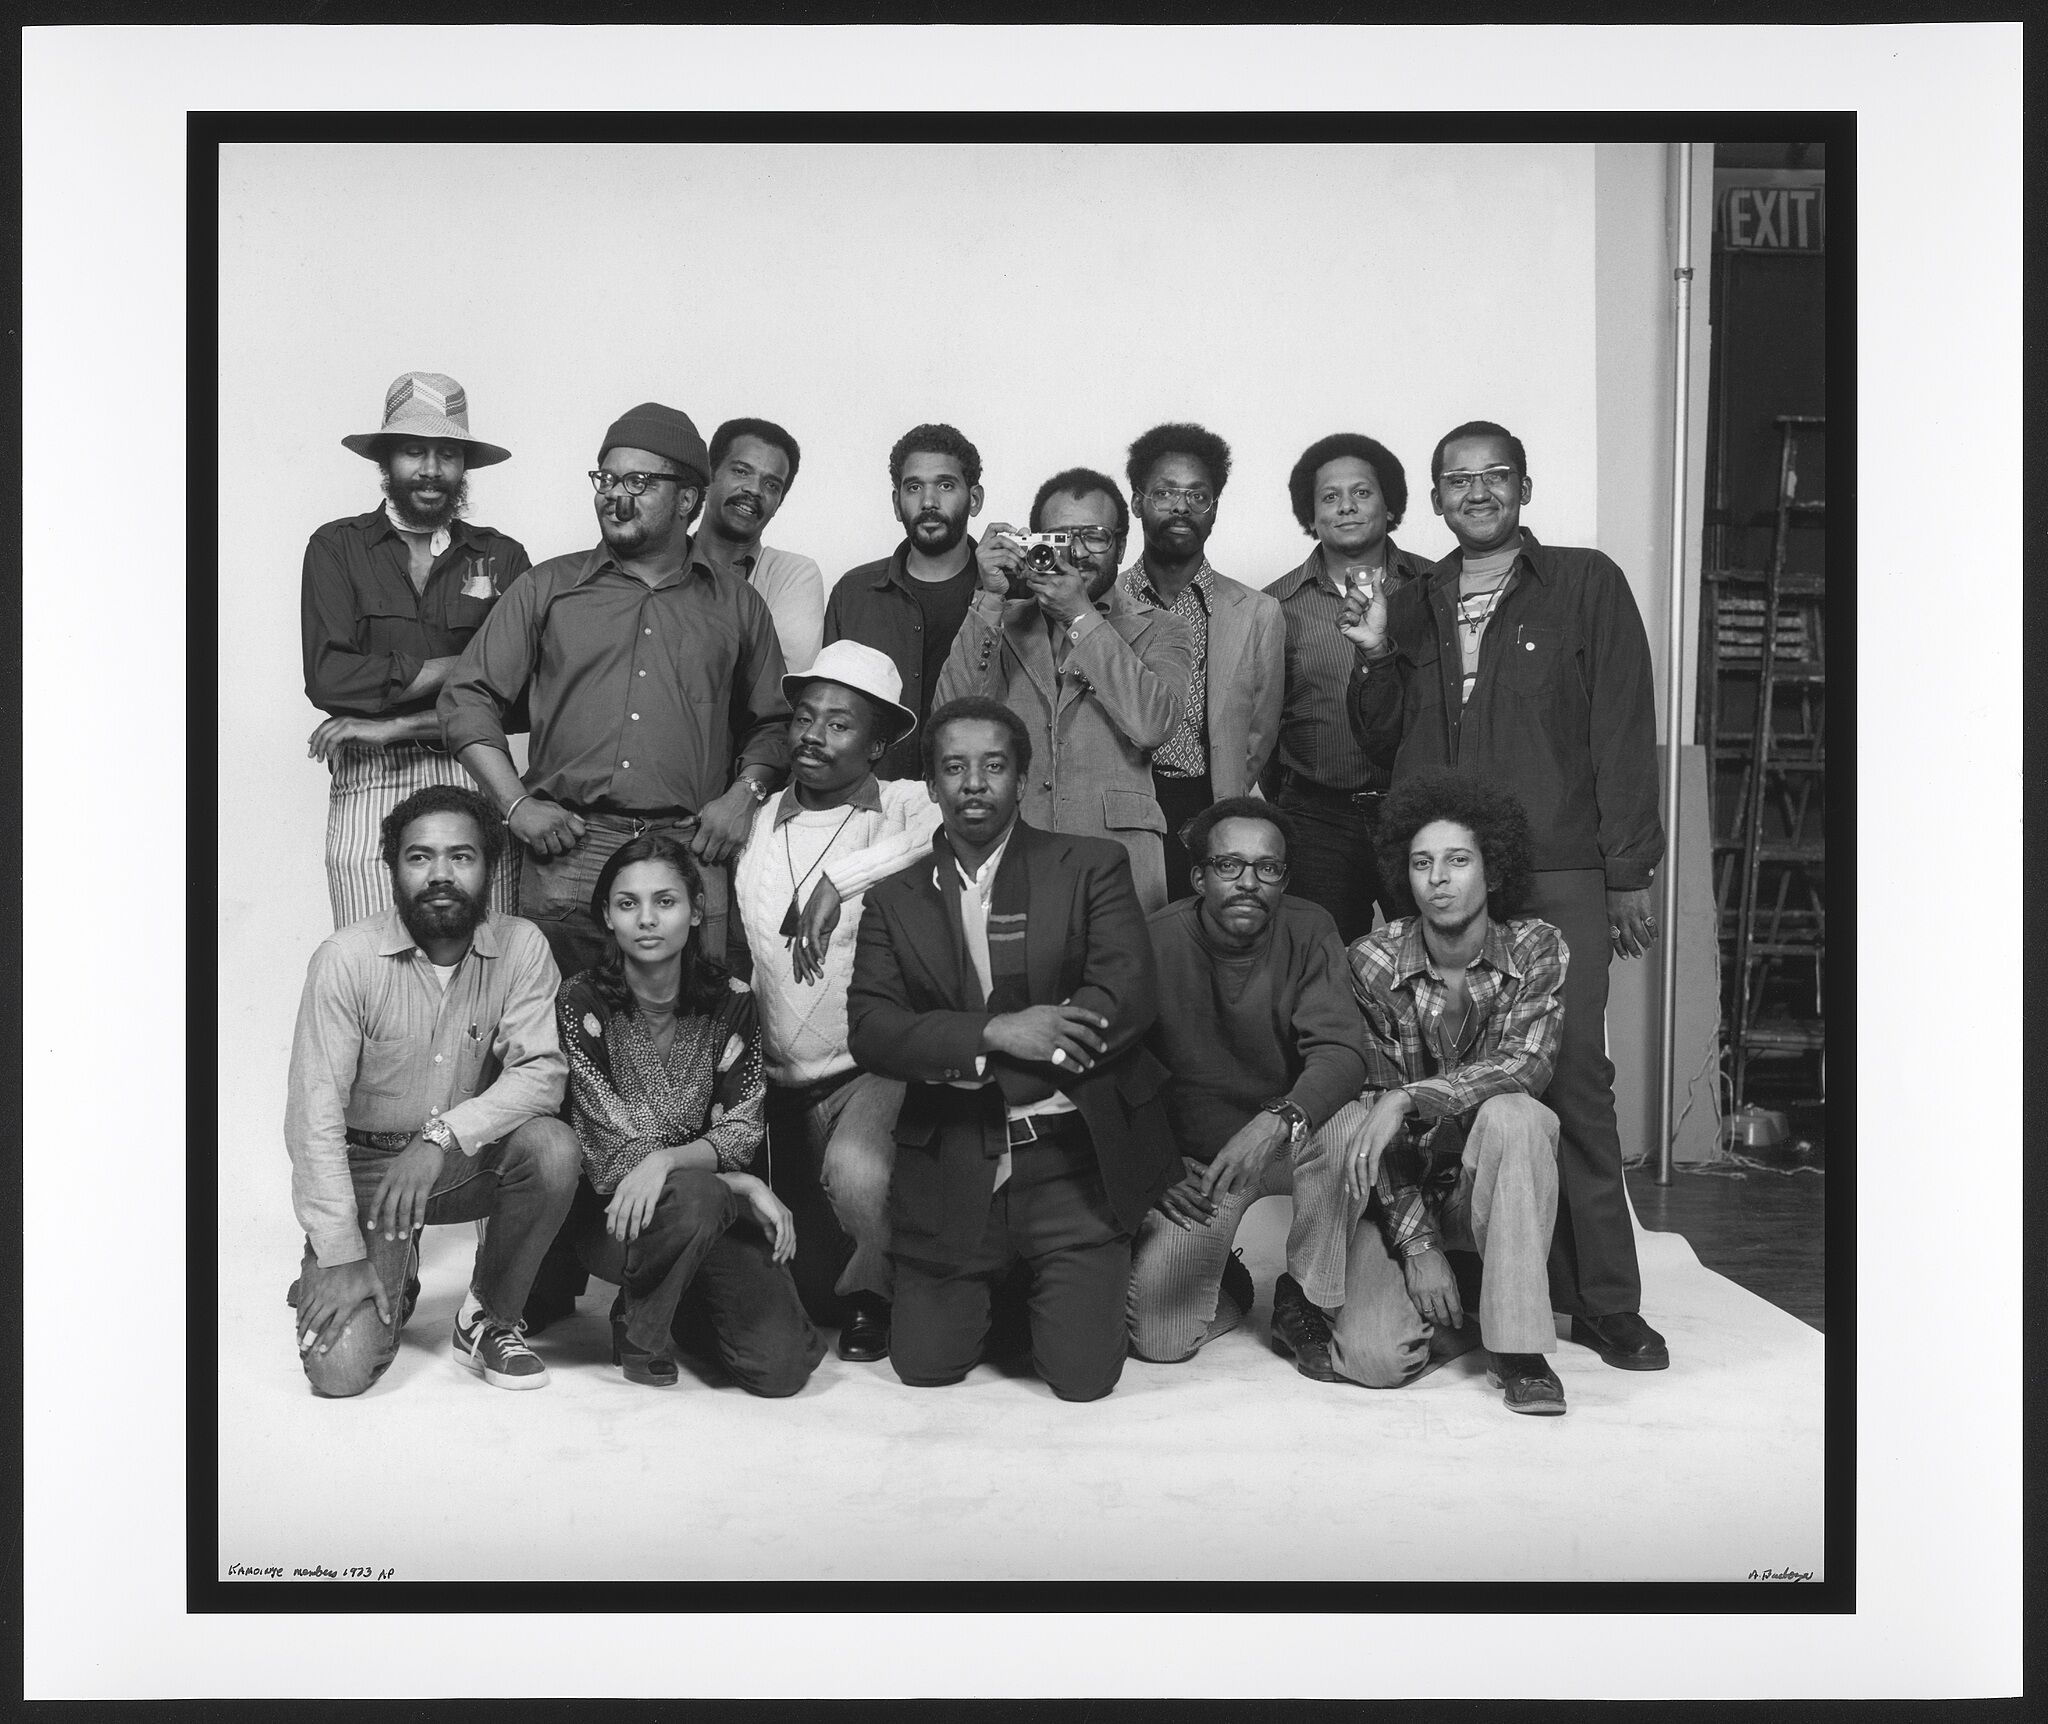 A group of African American artists who are part of the Kamoinge collective posing in front of a white backdrop.